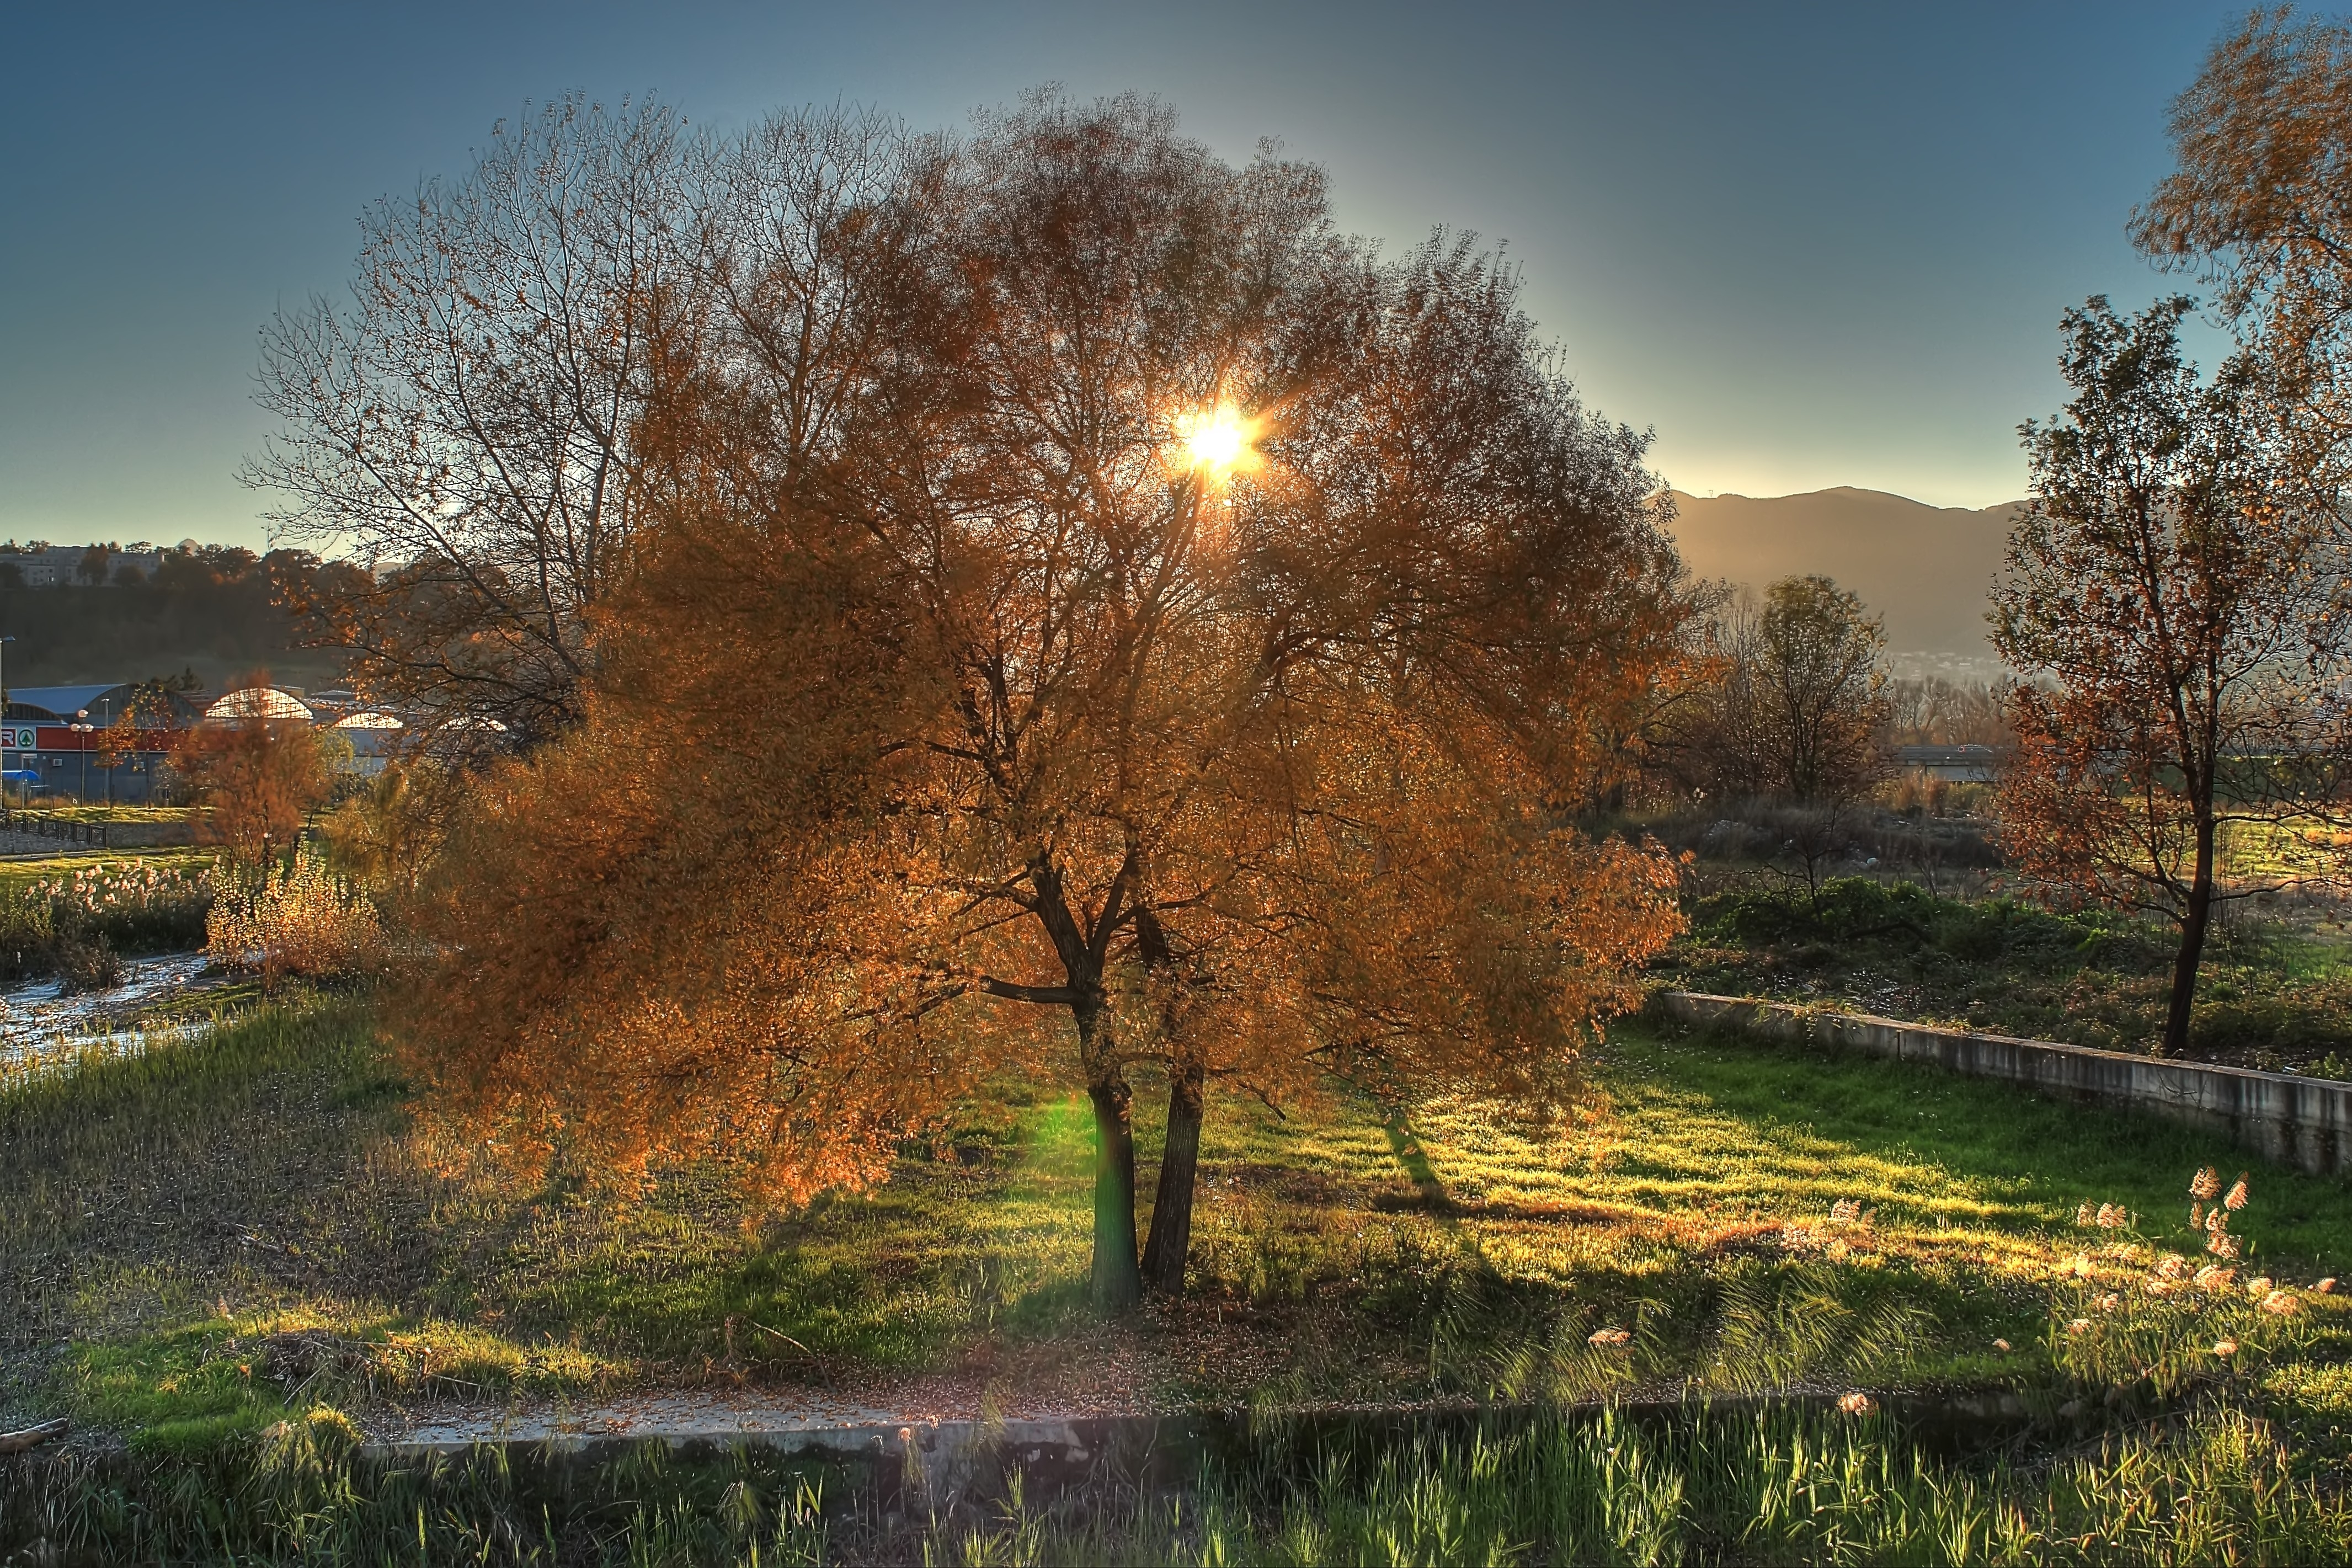 142091 download wallpaper Trees, Landscape, Nature, Autumn screensavers and pictures for free